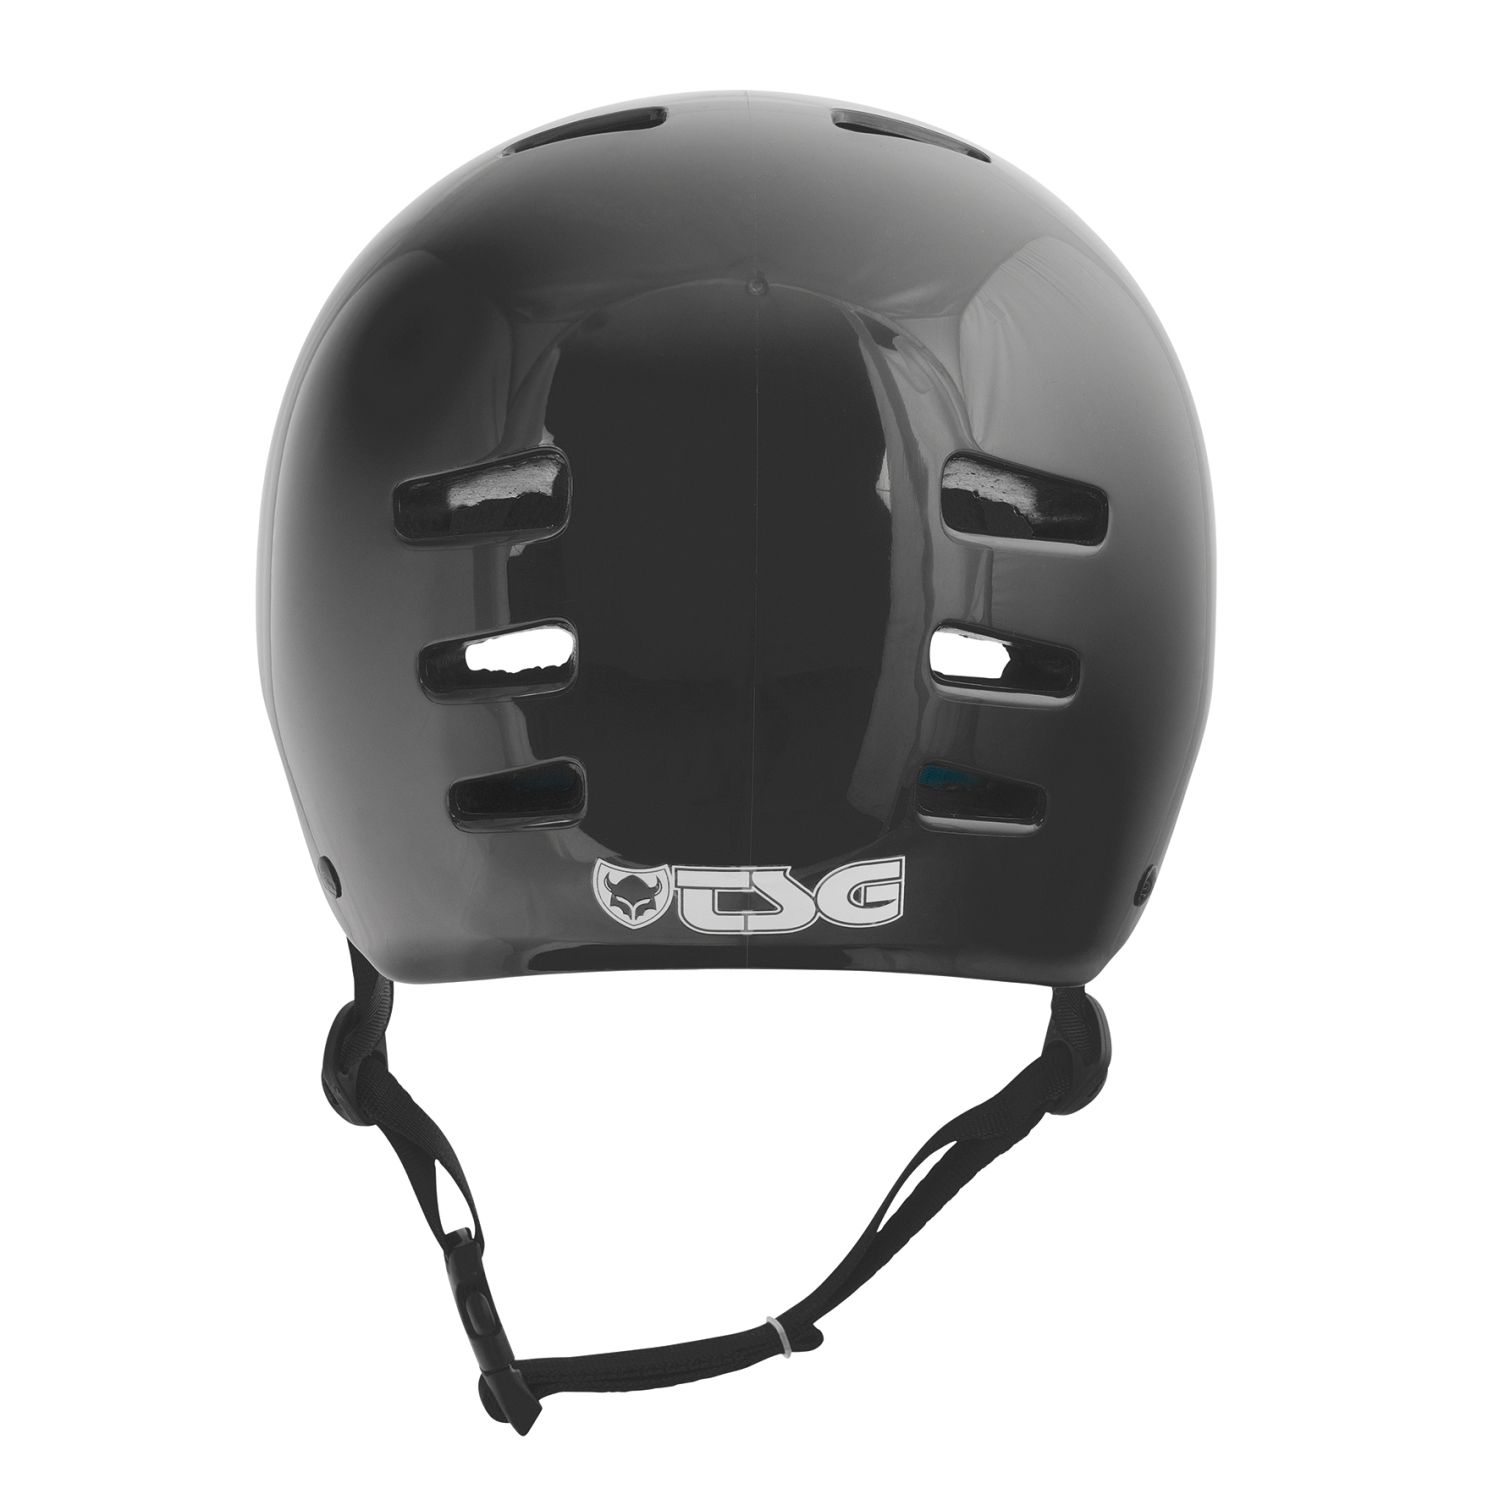 TSG BMX Dirt Helm Evolution Injected Injected Injected Farbe - Injected schwarz aabb98